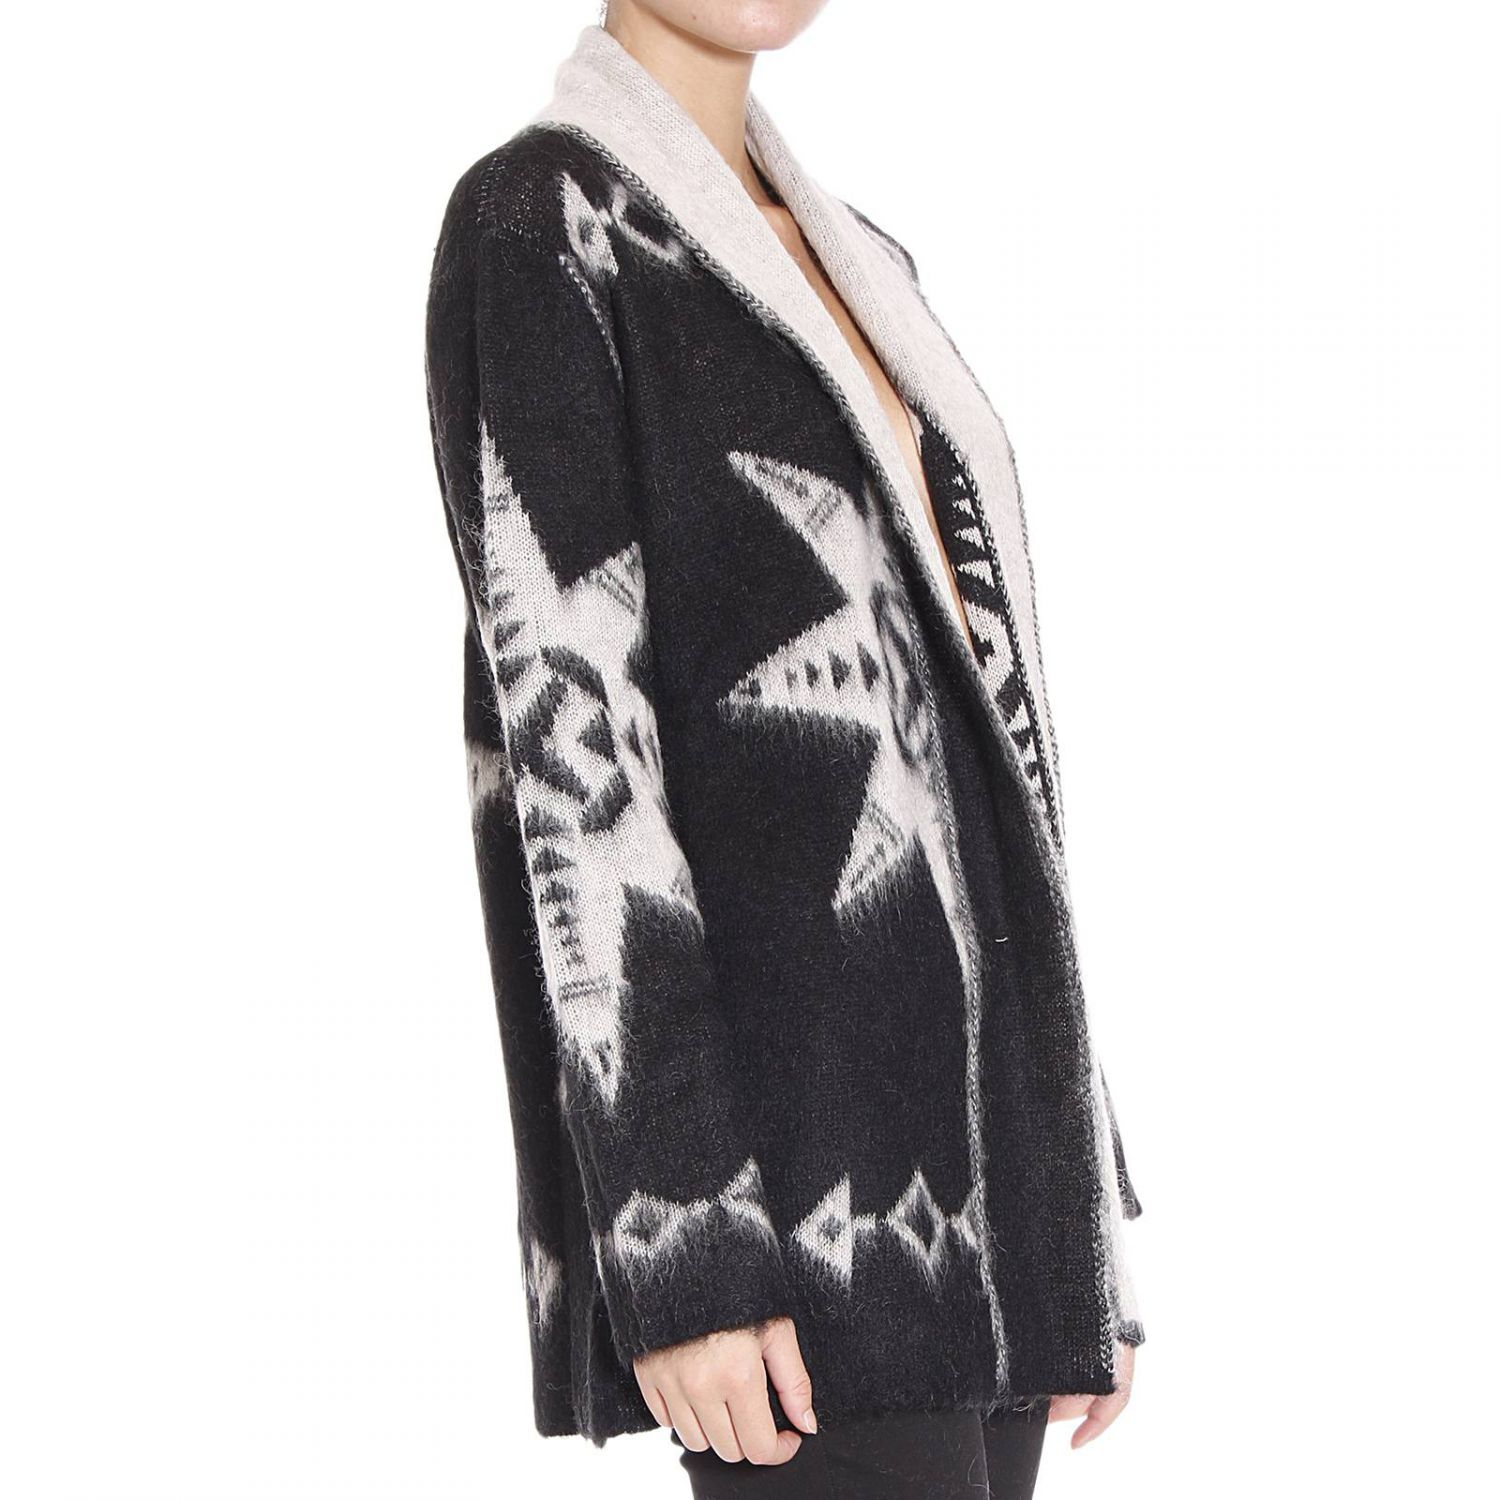 black single women in grace Manila grace women blazer on our store the best online selection of blazers manila grace exclusive items of italian and international designers - secure payments.